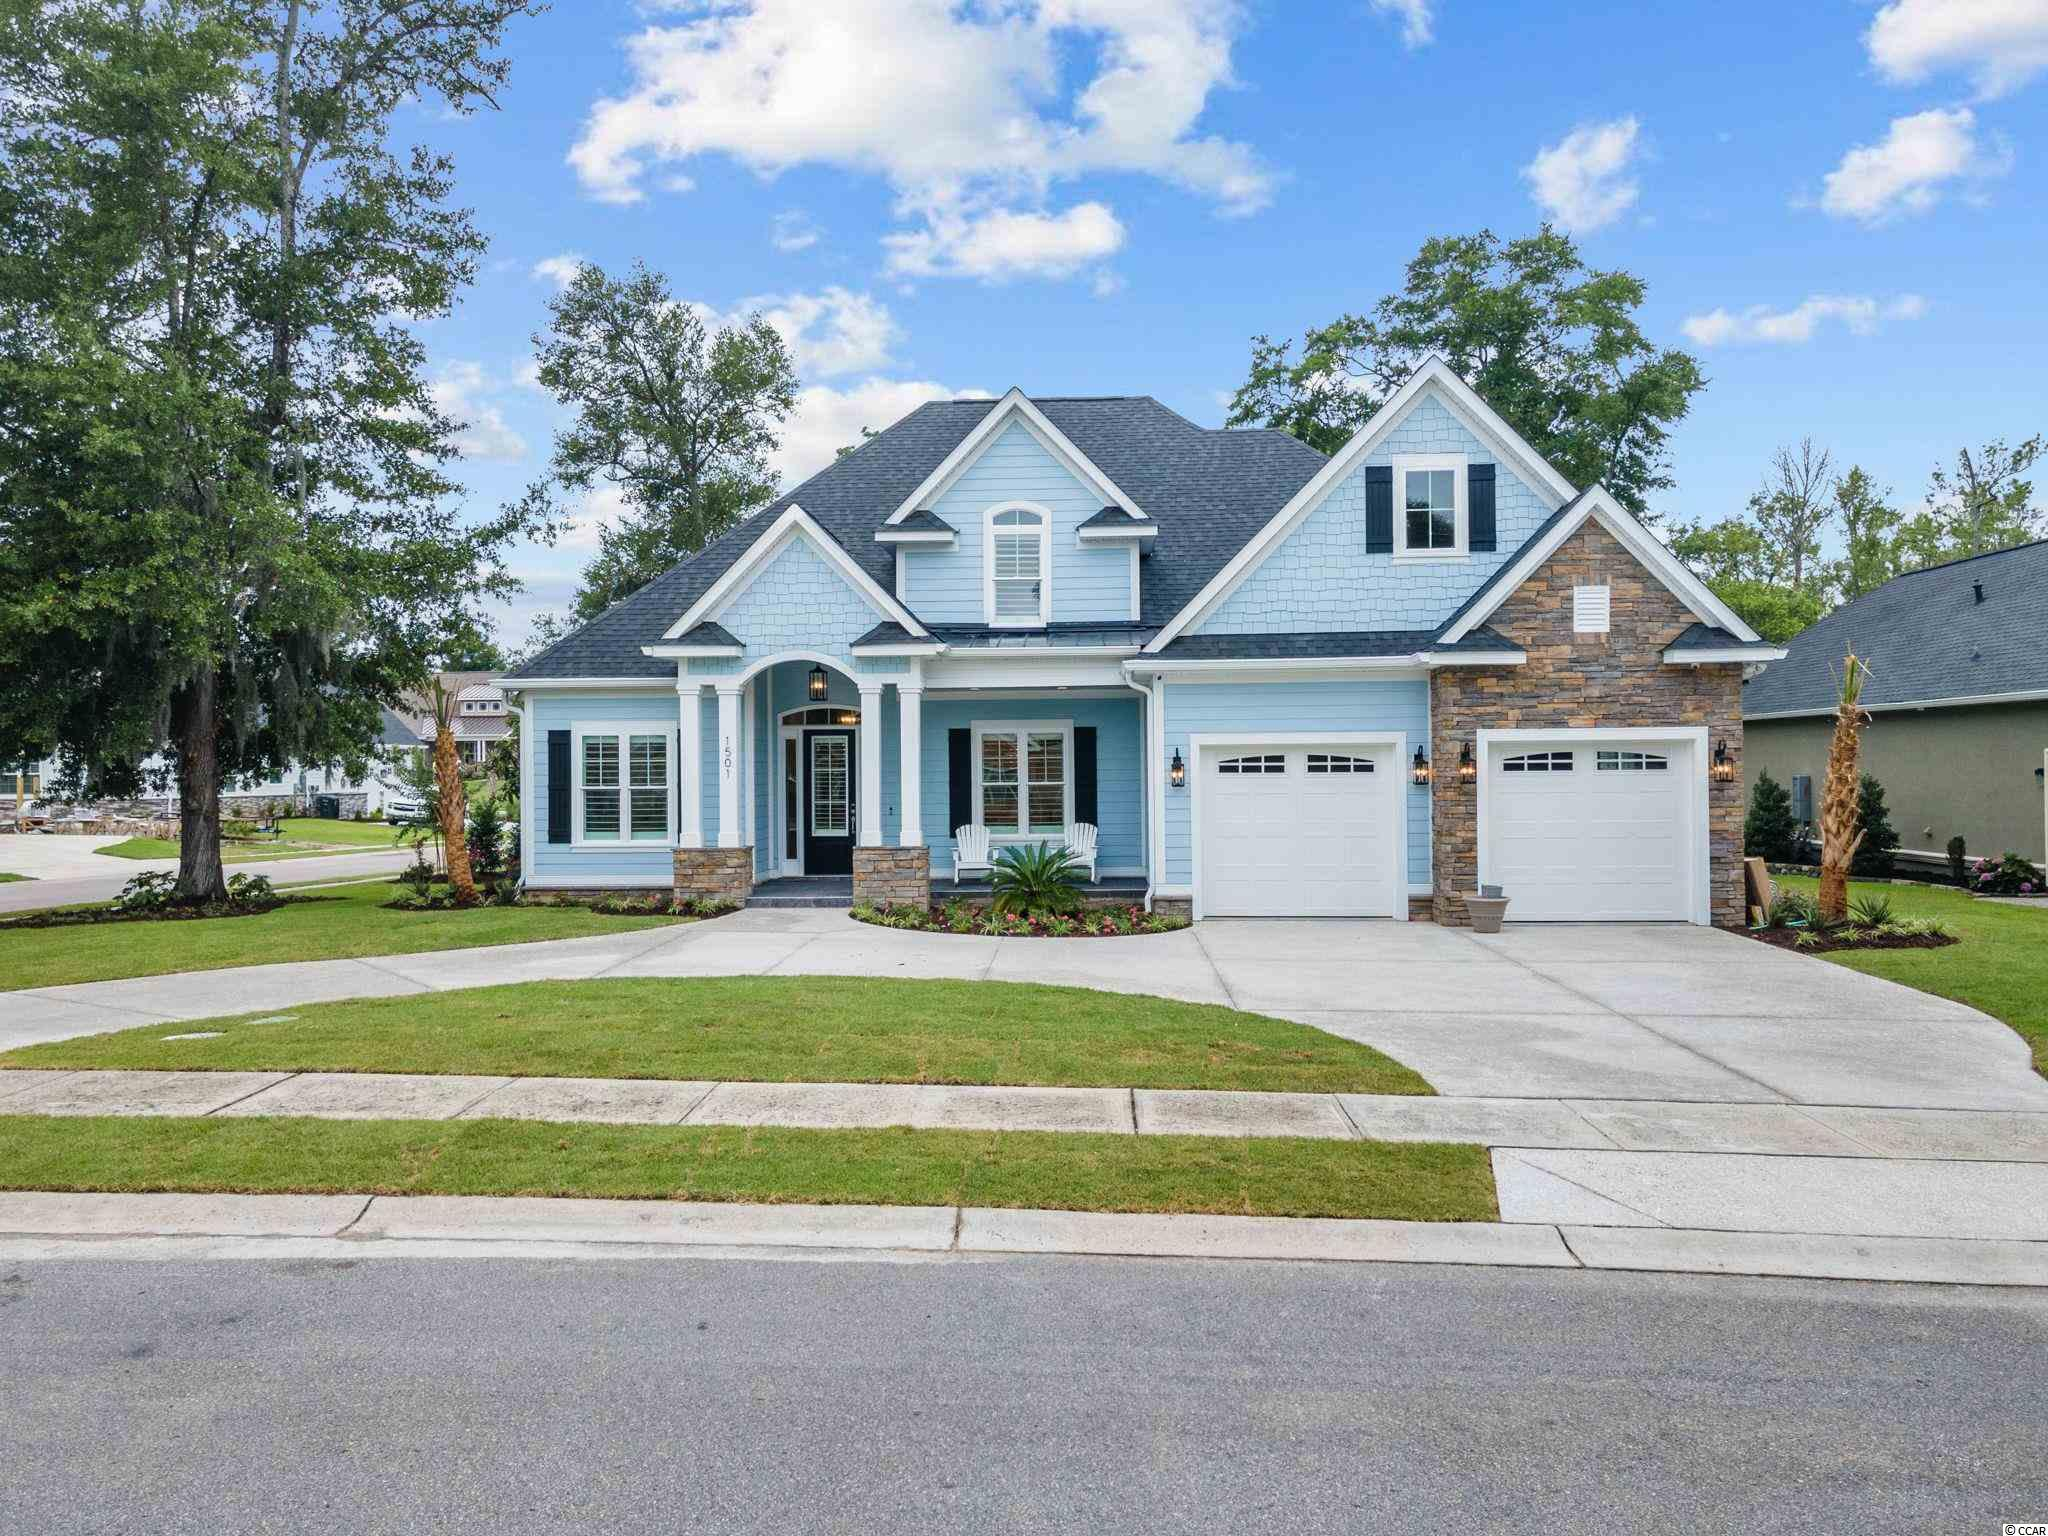 This beautiful custom built home is located in the prestigious Surf Estates neighborhood in North Myrtle Beach. 4 bedroom 2.5 baths, open floor plan, formal dining room, and huge bonus room! Master bedroom offer tray ceiling, 2 walk-in closets with custom shelves, garden tub, walk-in tile shower, double sinks with granite counter tops, and large linen closet! Enjoy natural gas for your kitchen range, additional ice maker, large kitchen island, walk-in pantry with custom shelves, granite counter tops, tile backslash and breakfast nook. The living room offer a gas fireplace, with custom built-ins. The living room and master bedroom are prewired for surround sound as well. Great size guest bedrooms with guest bathroom in between with tile and granite counter tops. This home also features a huge screened in porch, large concrete patio, with a 2 car garage. Located just a golf cart ride to shopping, grocery stores, and the beach!